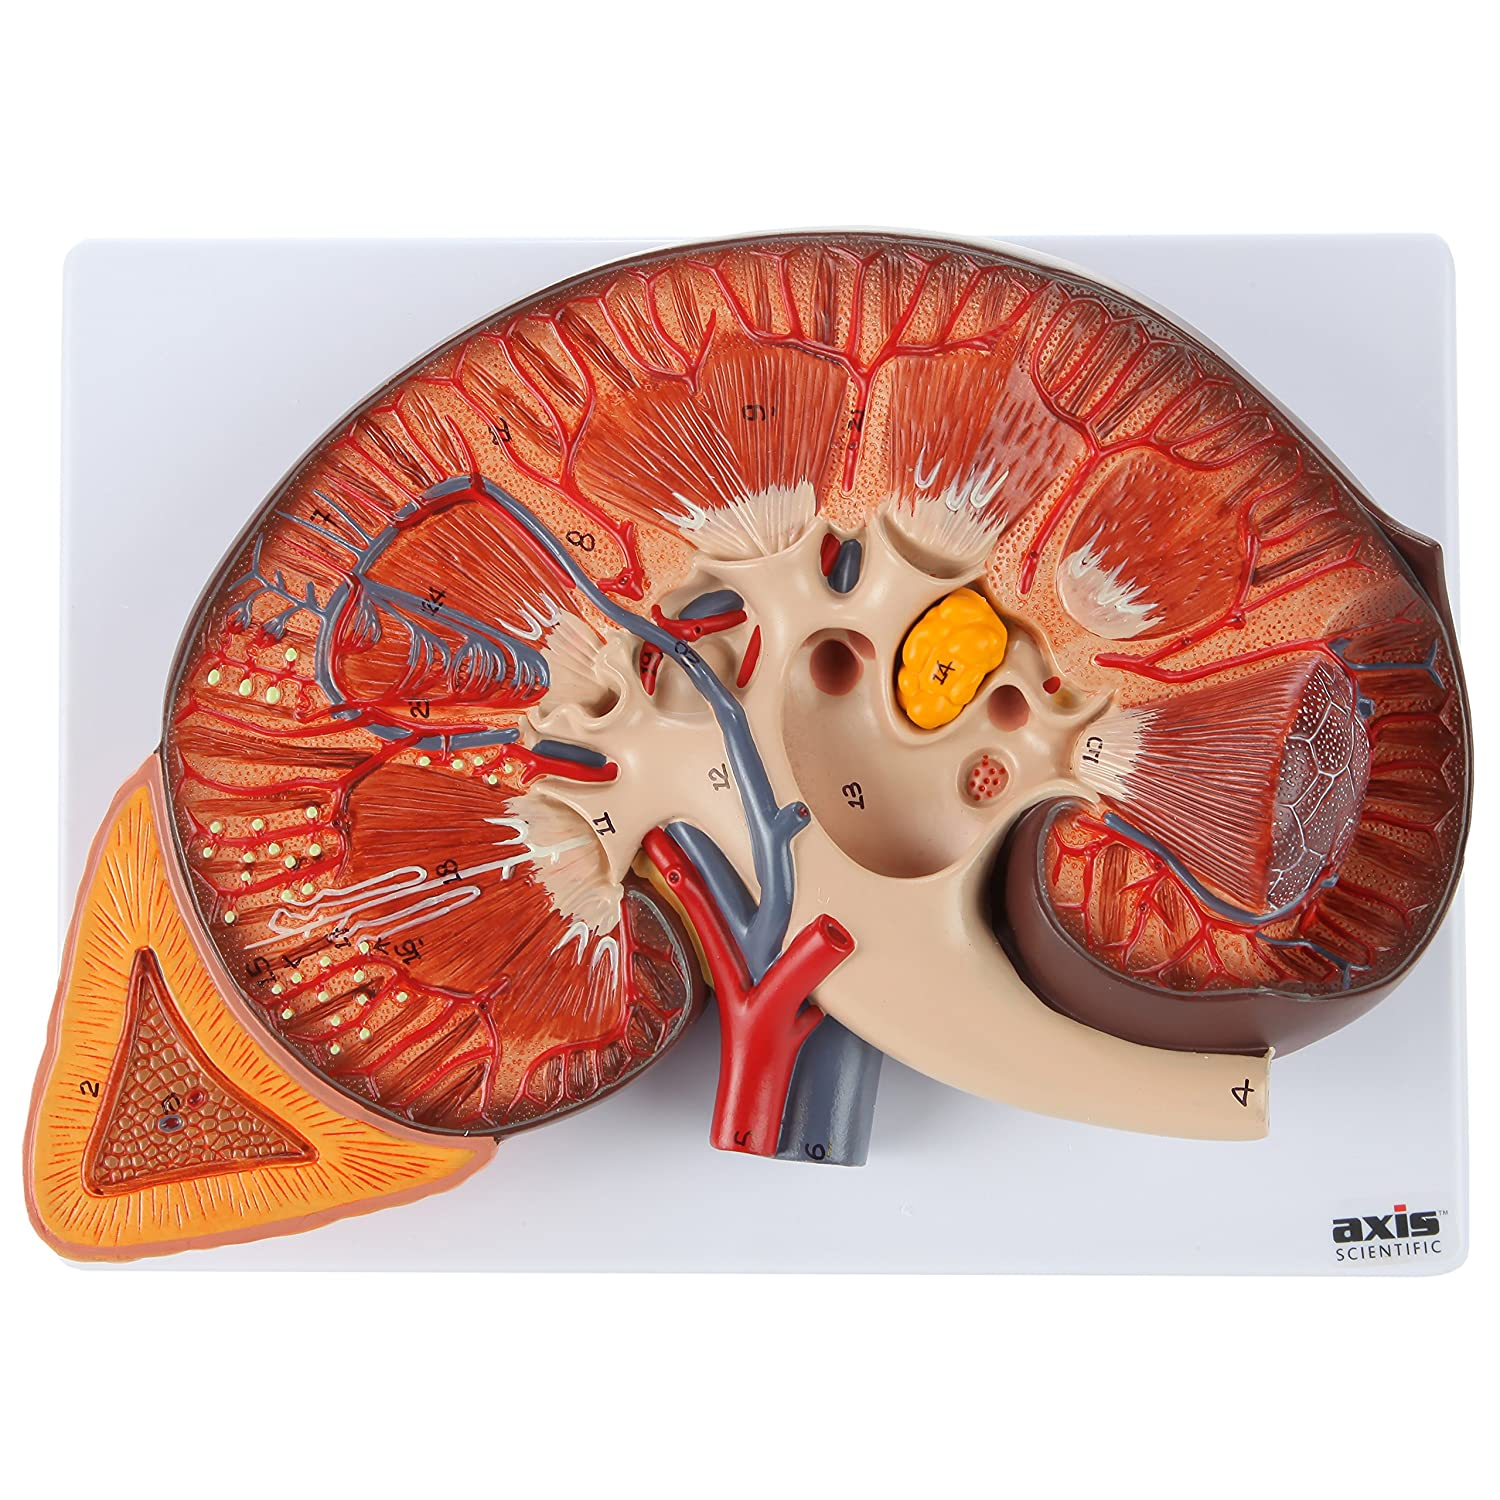 Axis Scientific Human Kidney Model Anatomical Model Is Enlarged To